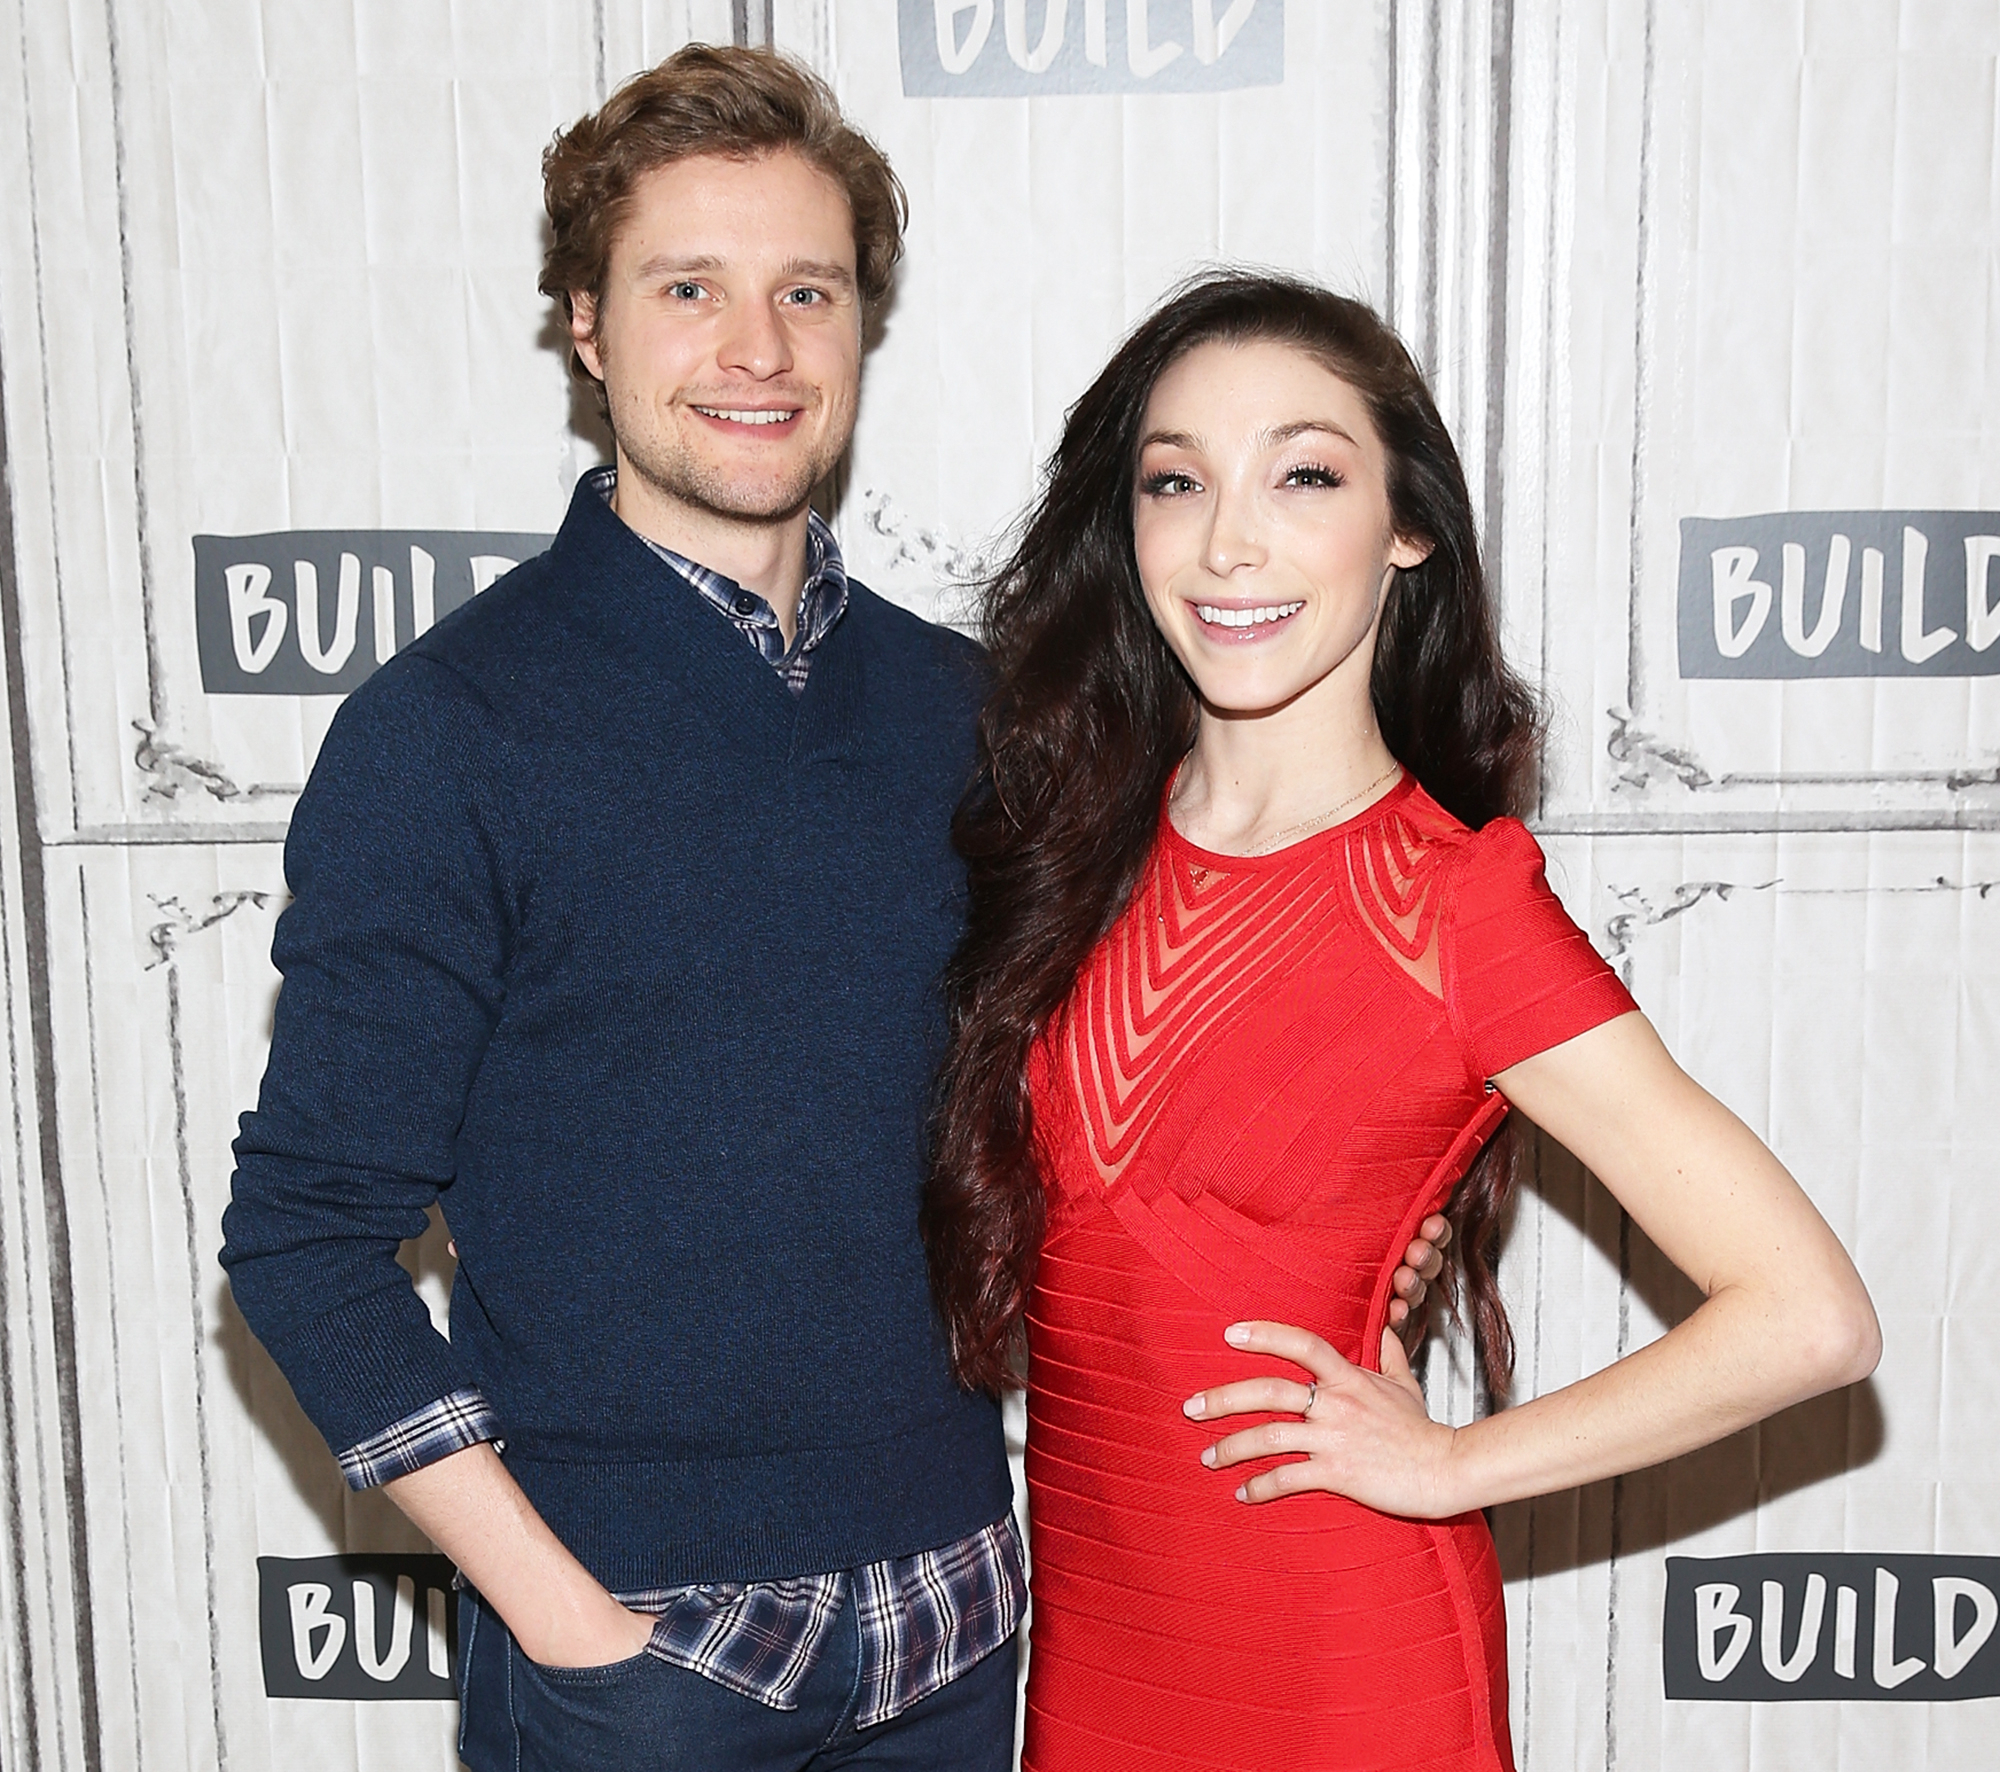 Meryl Davis and Charlie White are posing with a smile. Meryl looks great in red dress and Charlie looks total clad in blue sweater and patterned shirt.